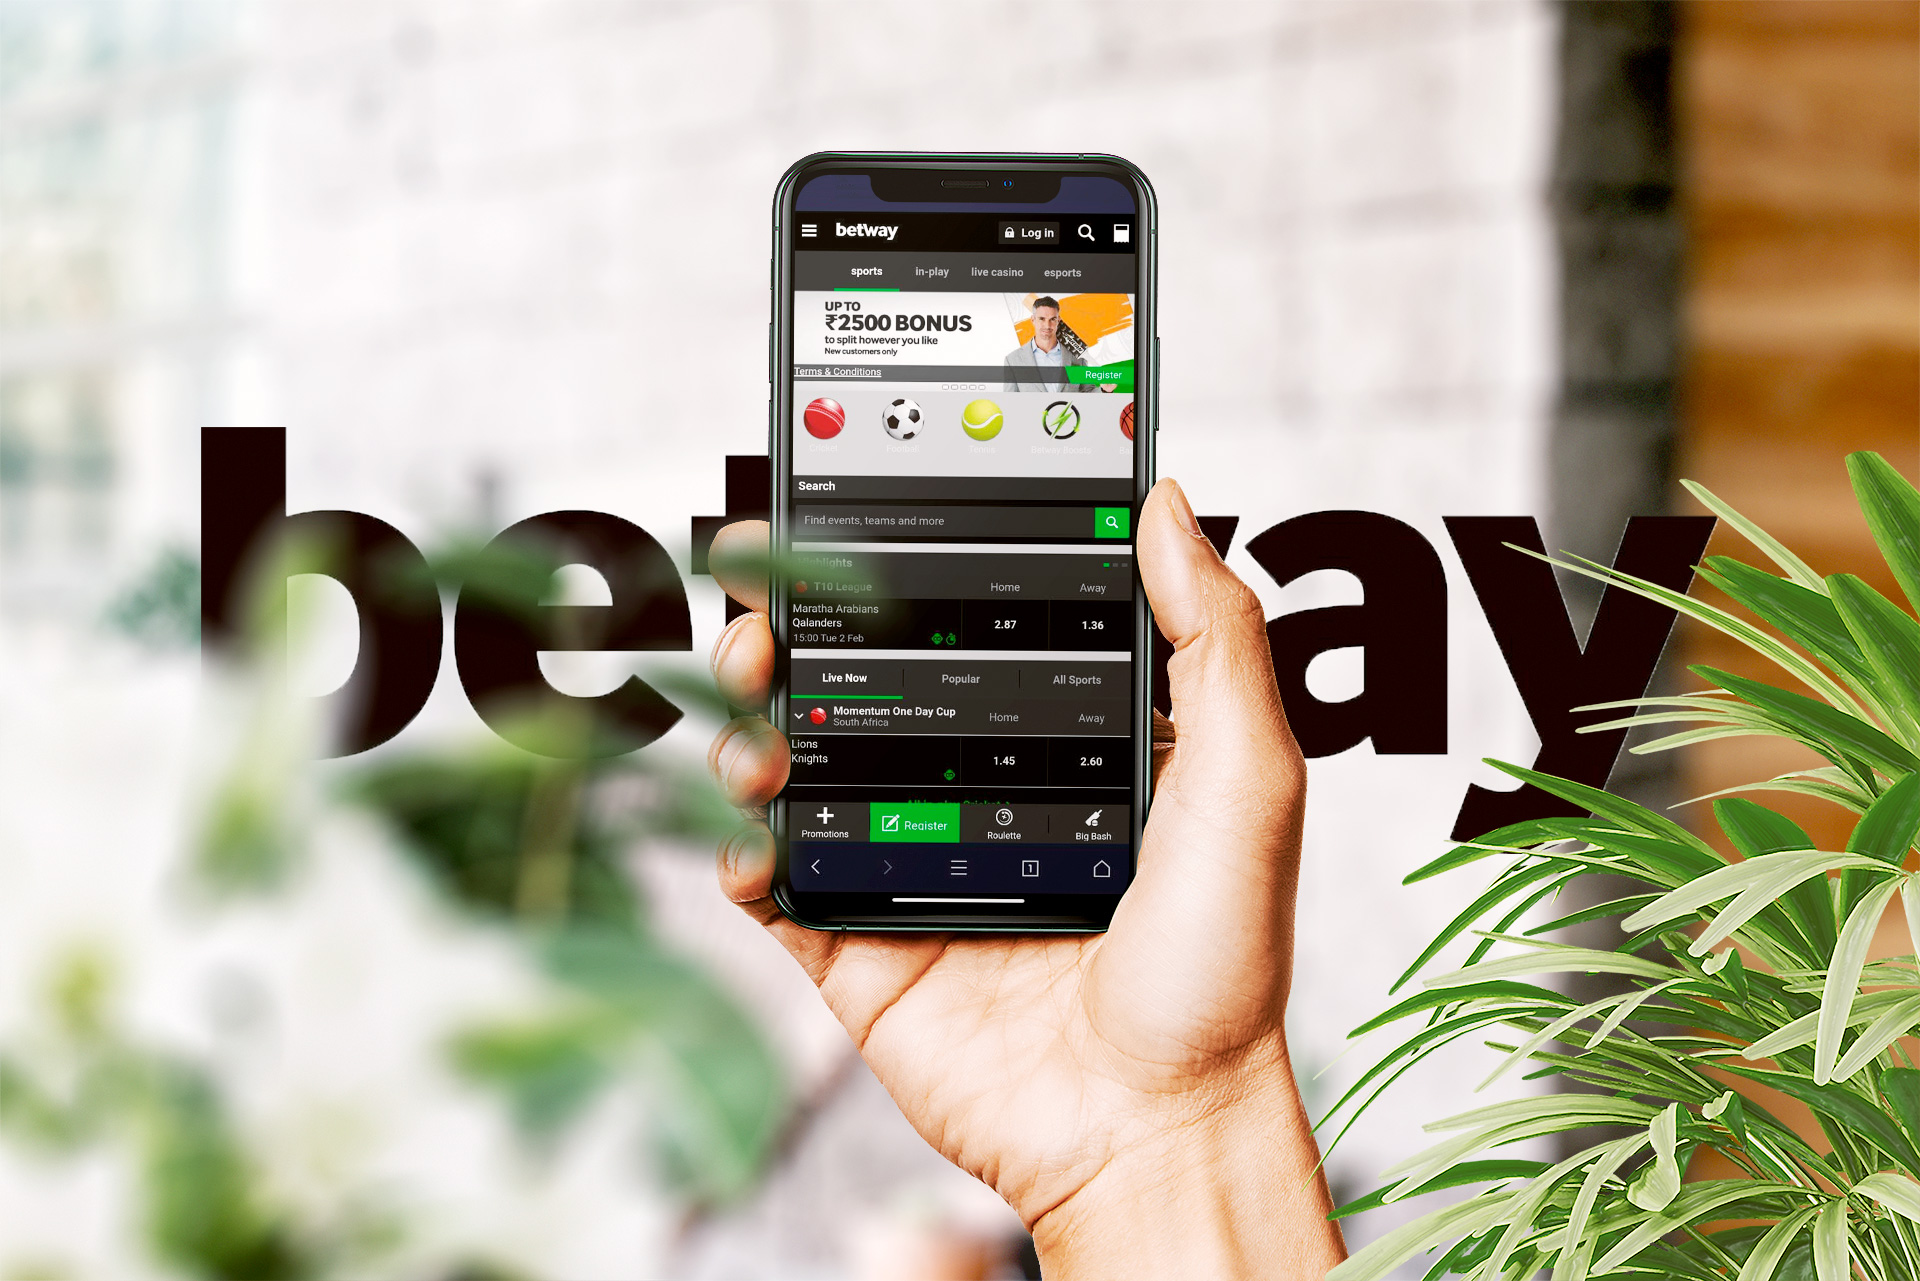 Install the Betway app on your Android and place bets on IPL.